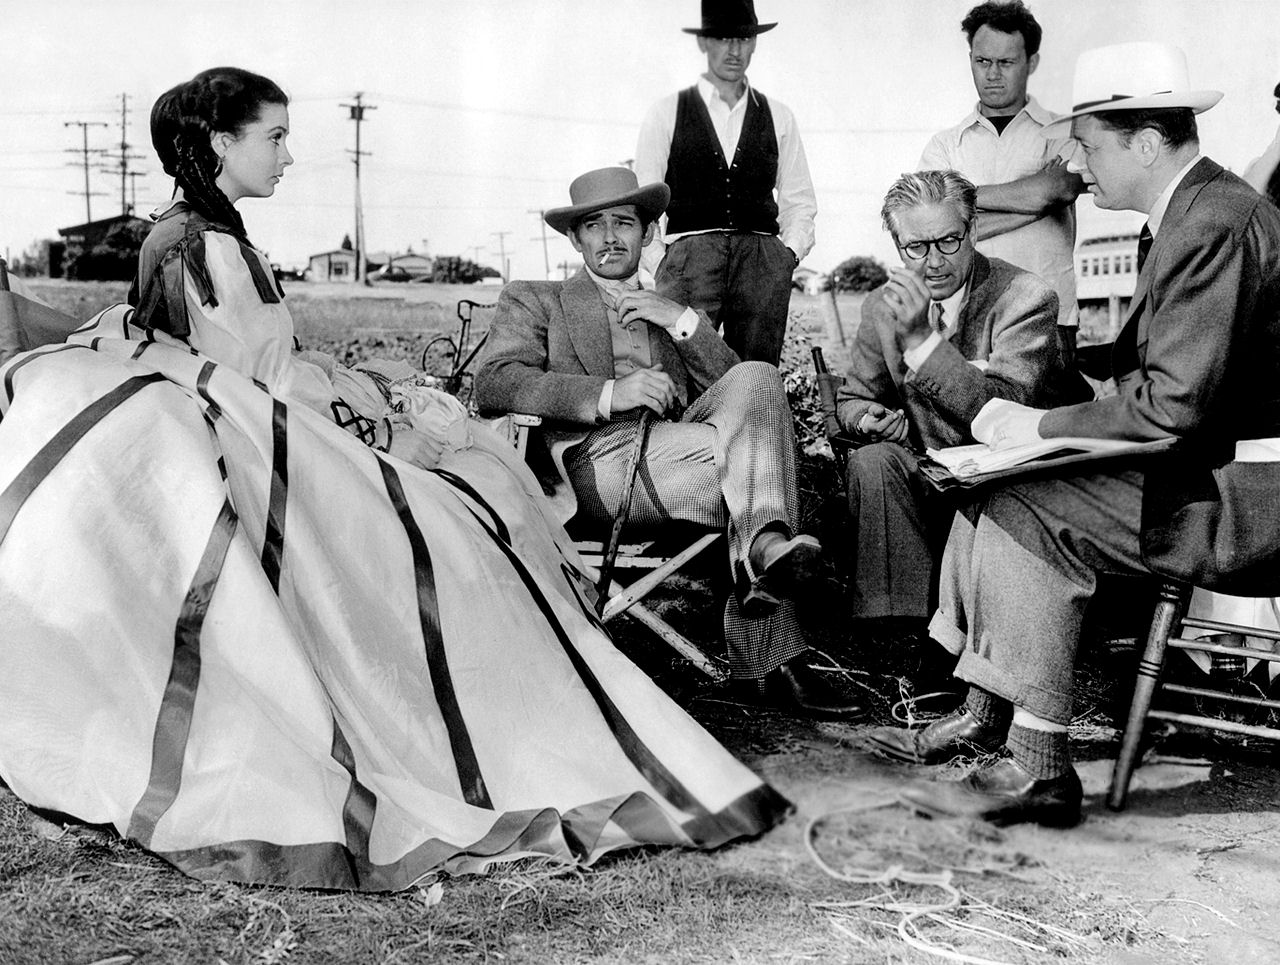 photo tournage coulisse cinema GoneWithTheWind 10 Photos sur des tournages de films #2